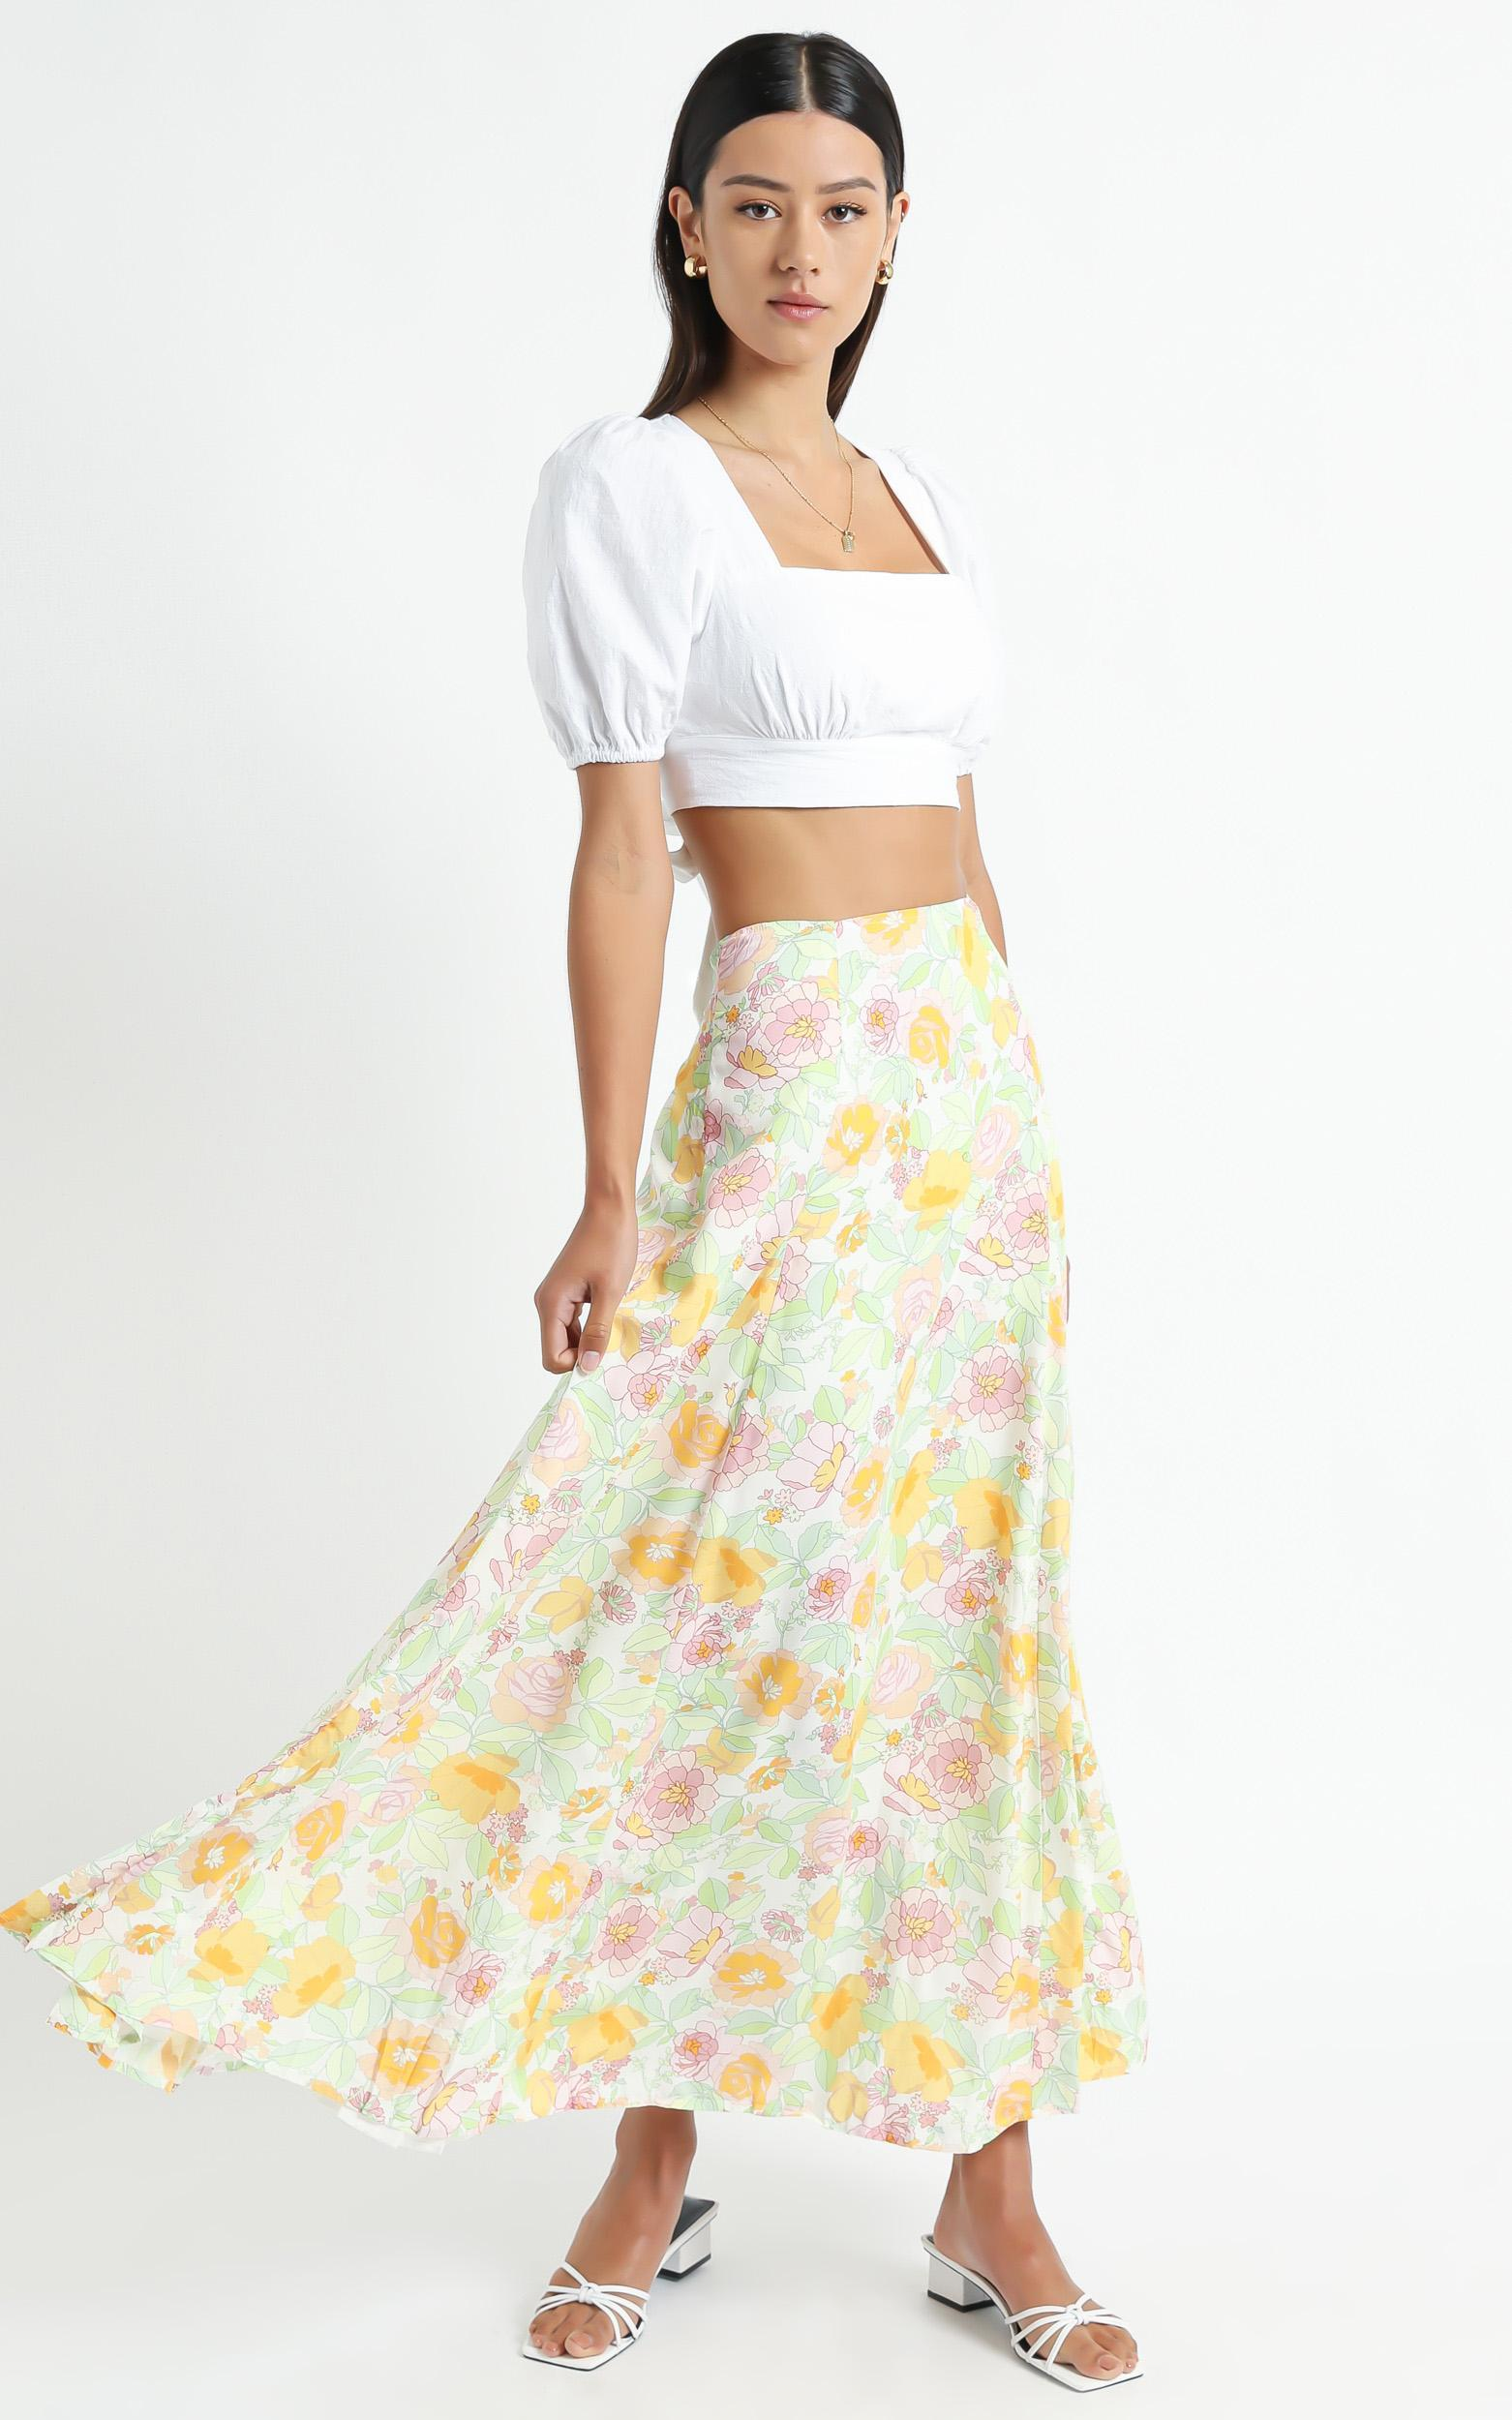 Stephens Skirt in Linear Floral - 6 (XS), Multi, hi-res image number null